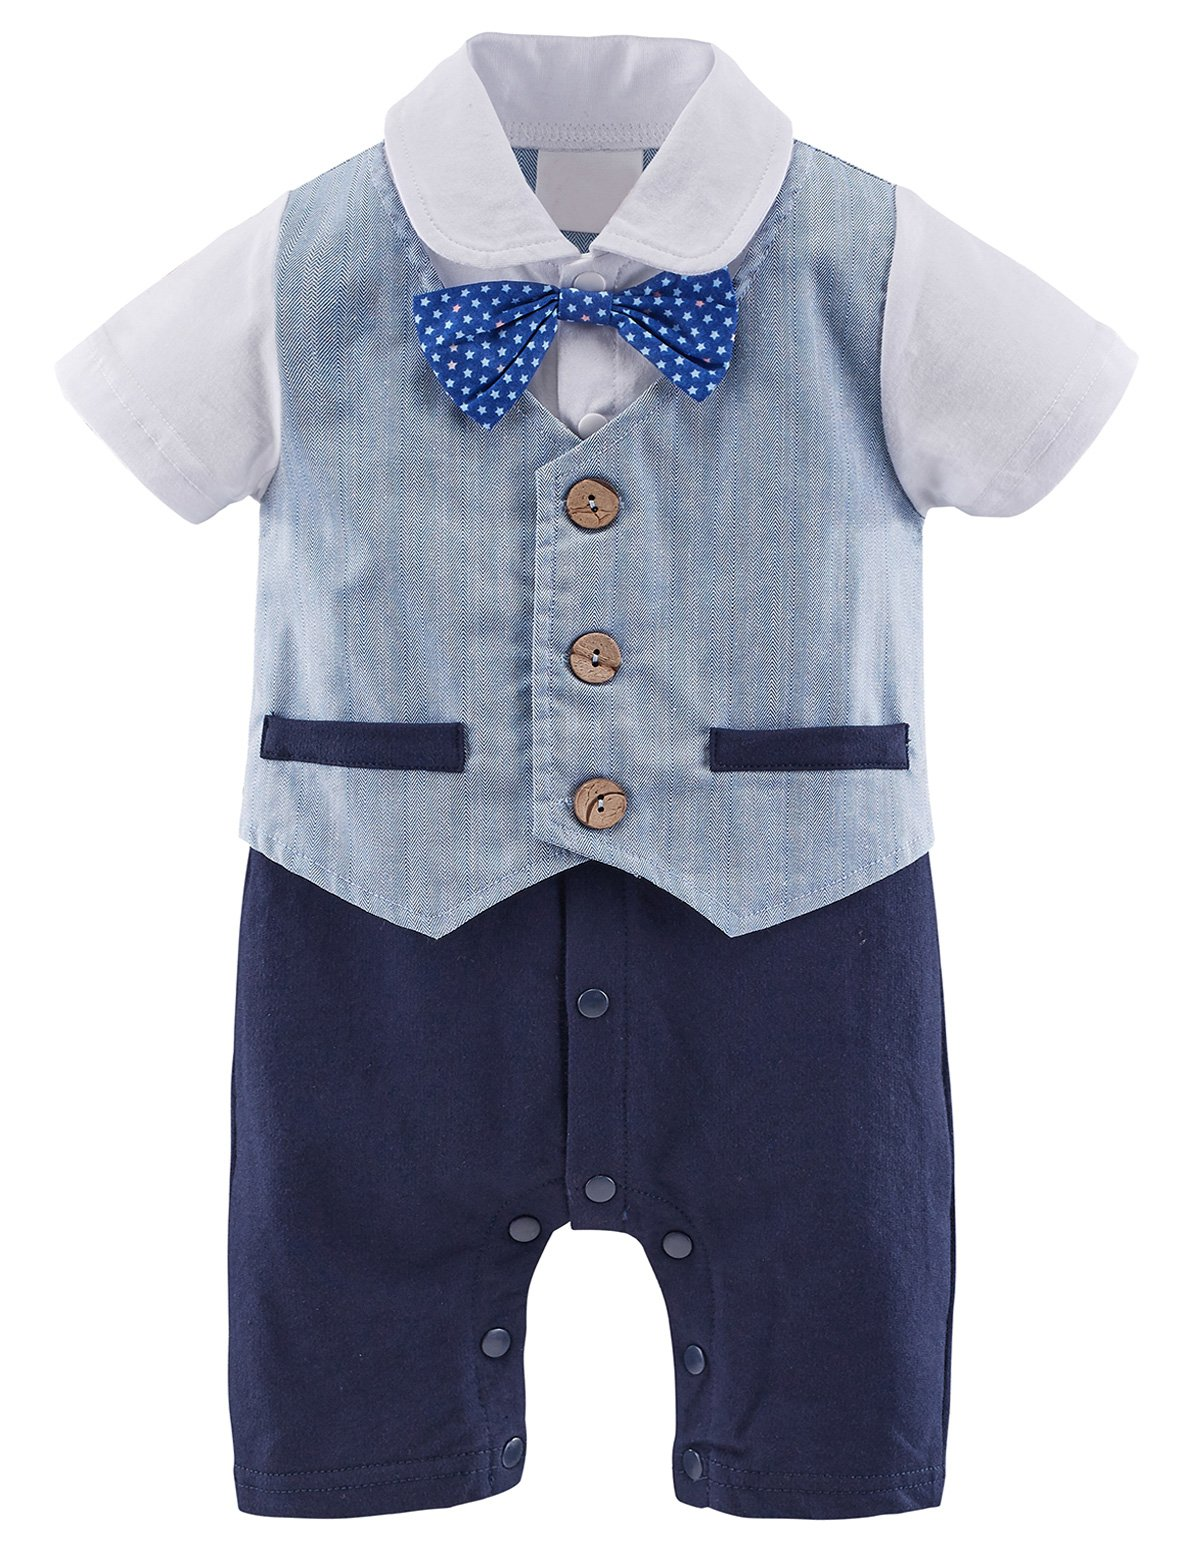 Mombebe Baby Boys' Tuxedo Gentleman Romper Outfit with Bowknot (12-18 Months, Blue)